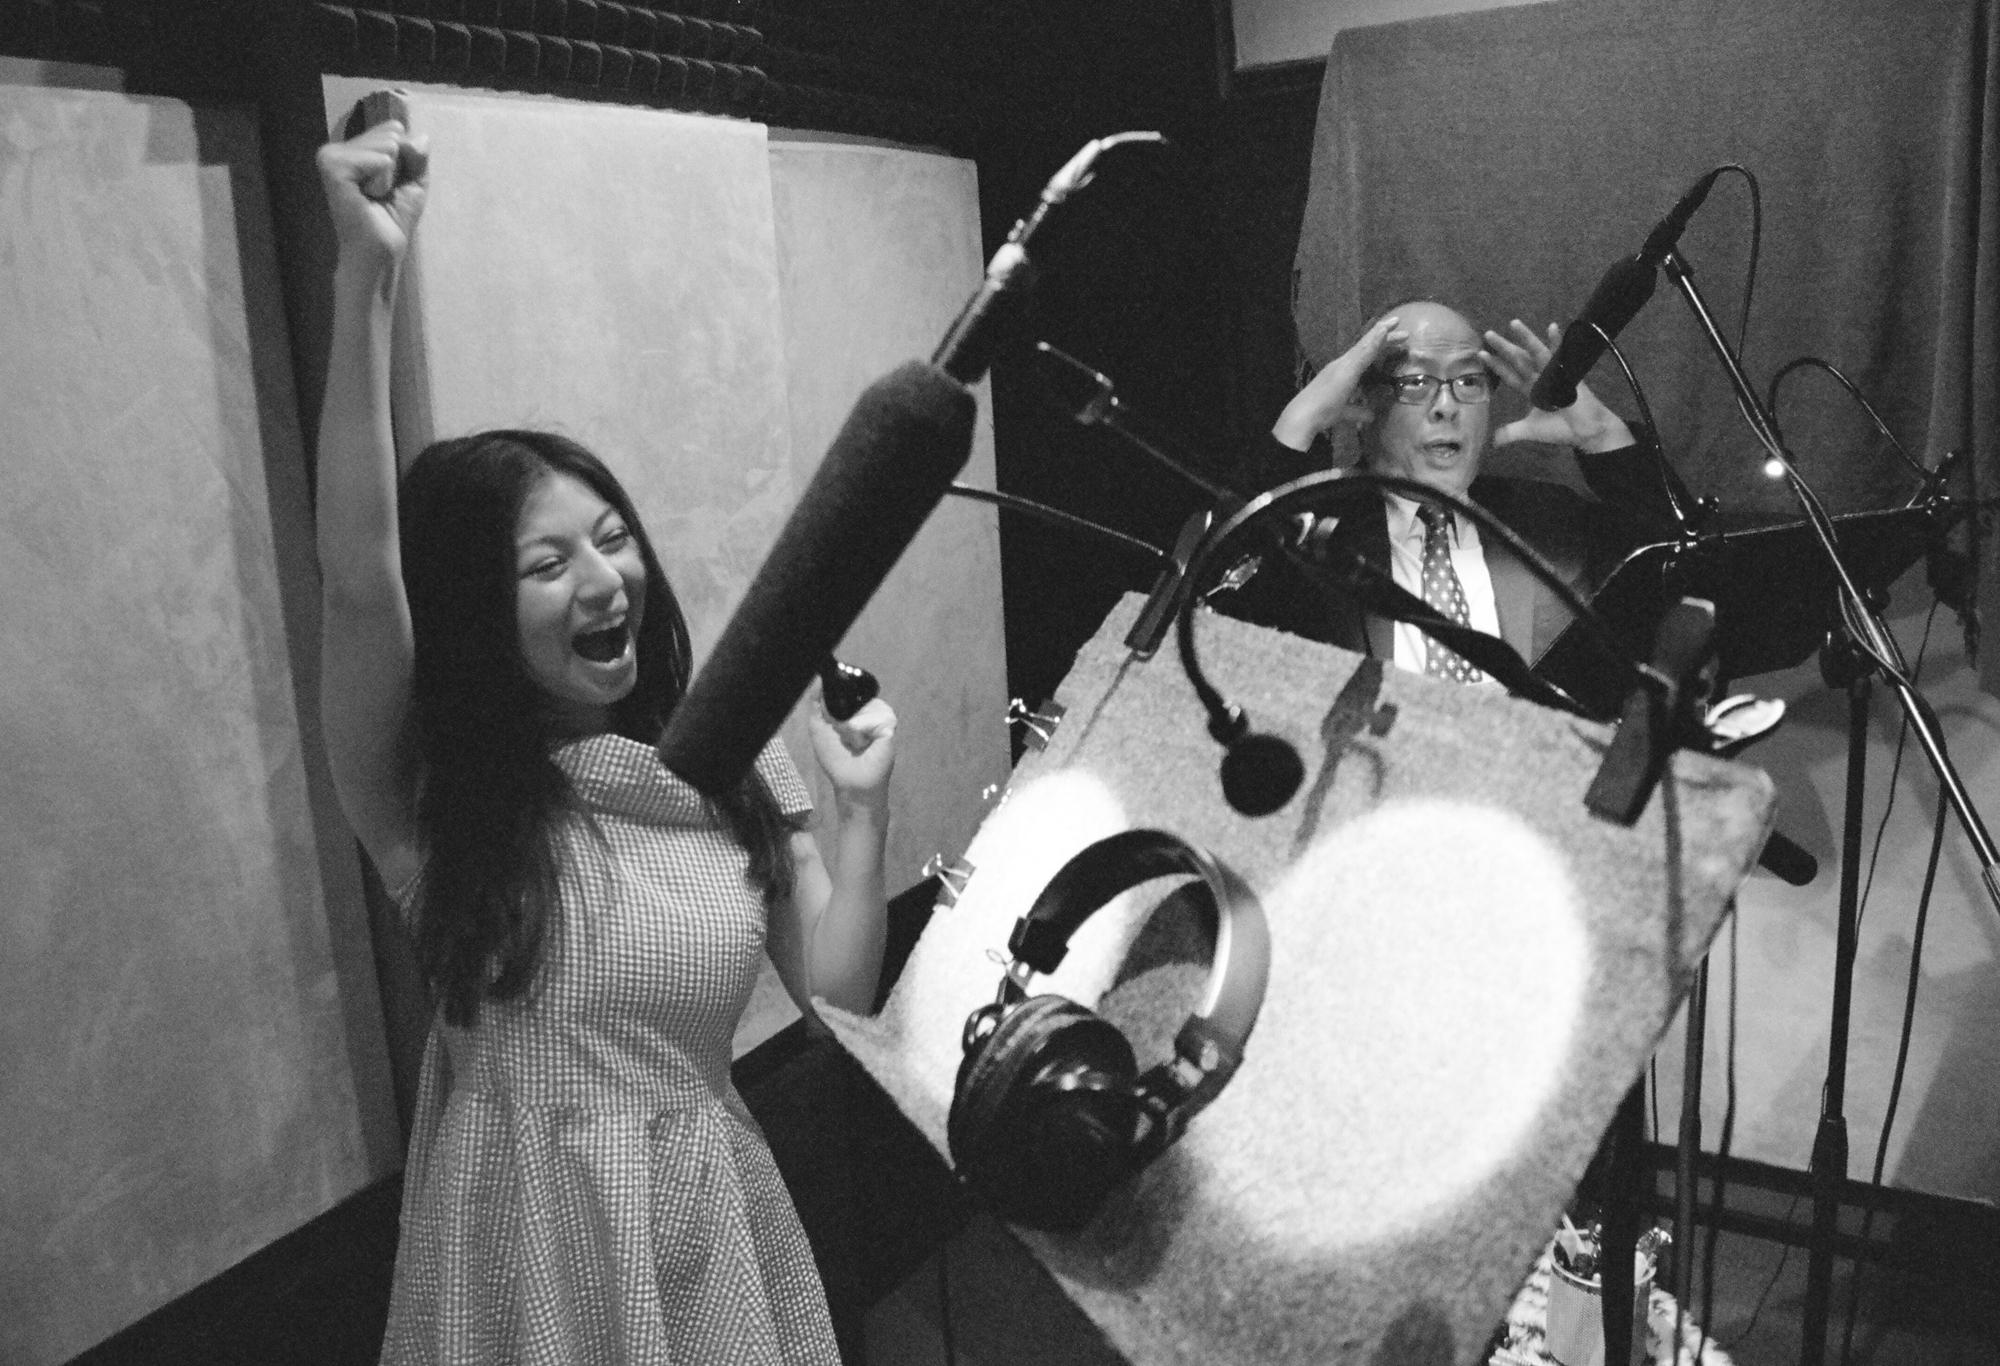 """Actor Katherine Park performs in a sound booth alongside actor Raymond Ma in Studio City, Los Angeles, as voice-over artists for the animated short film """"Up In The Clouds"""" written and directed by Ed Moy. The film focuses on the iconic first Asian American Woman to earn her pilots license in the United States, a trail blazer named Katherine Cheung. She is listed as the first Asian Aviatrix in the United States by the Smithsonian Museum."""